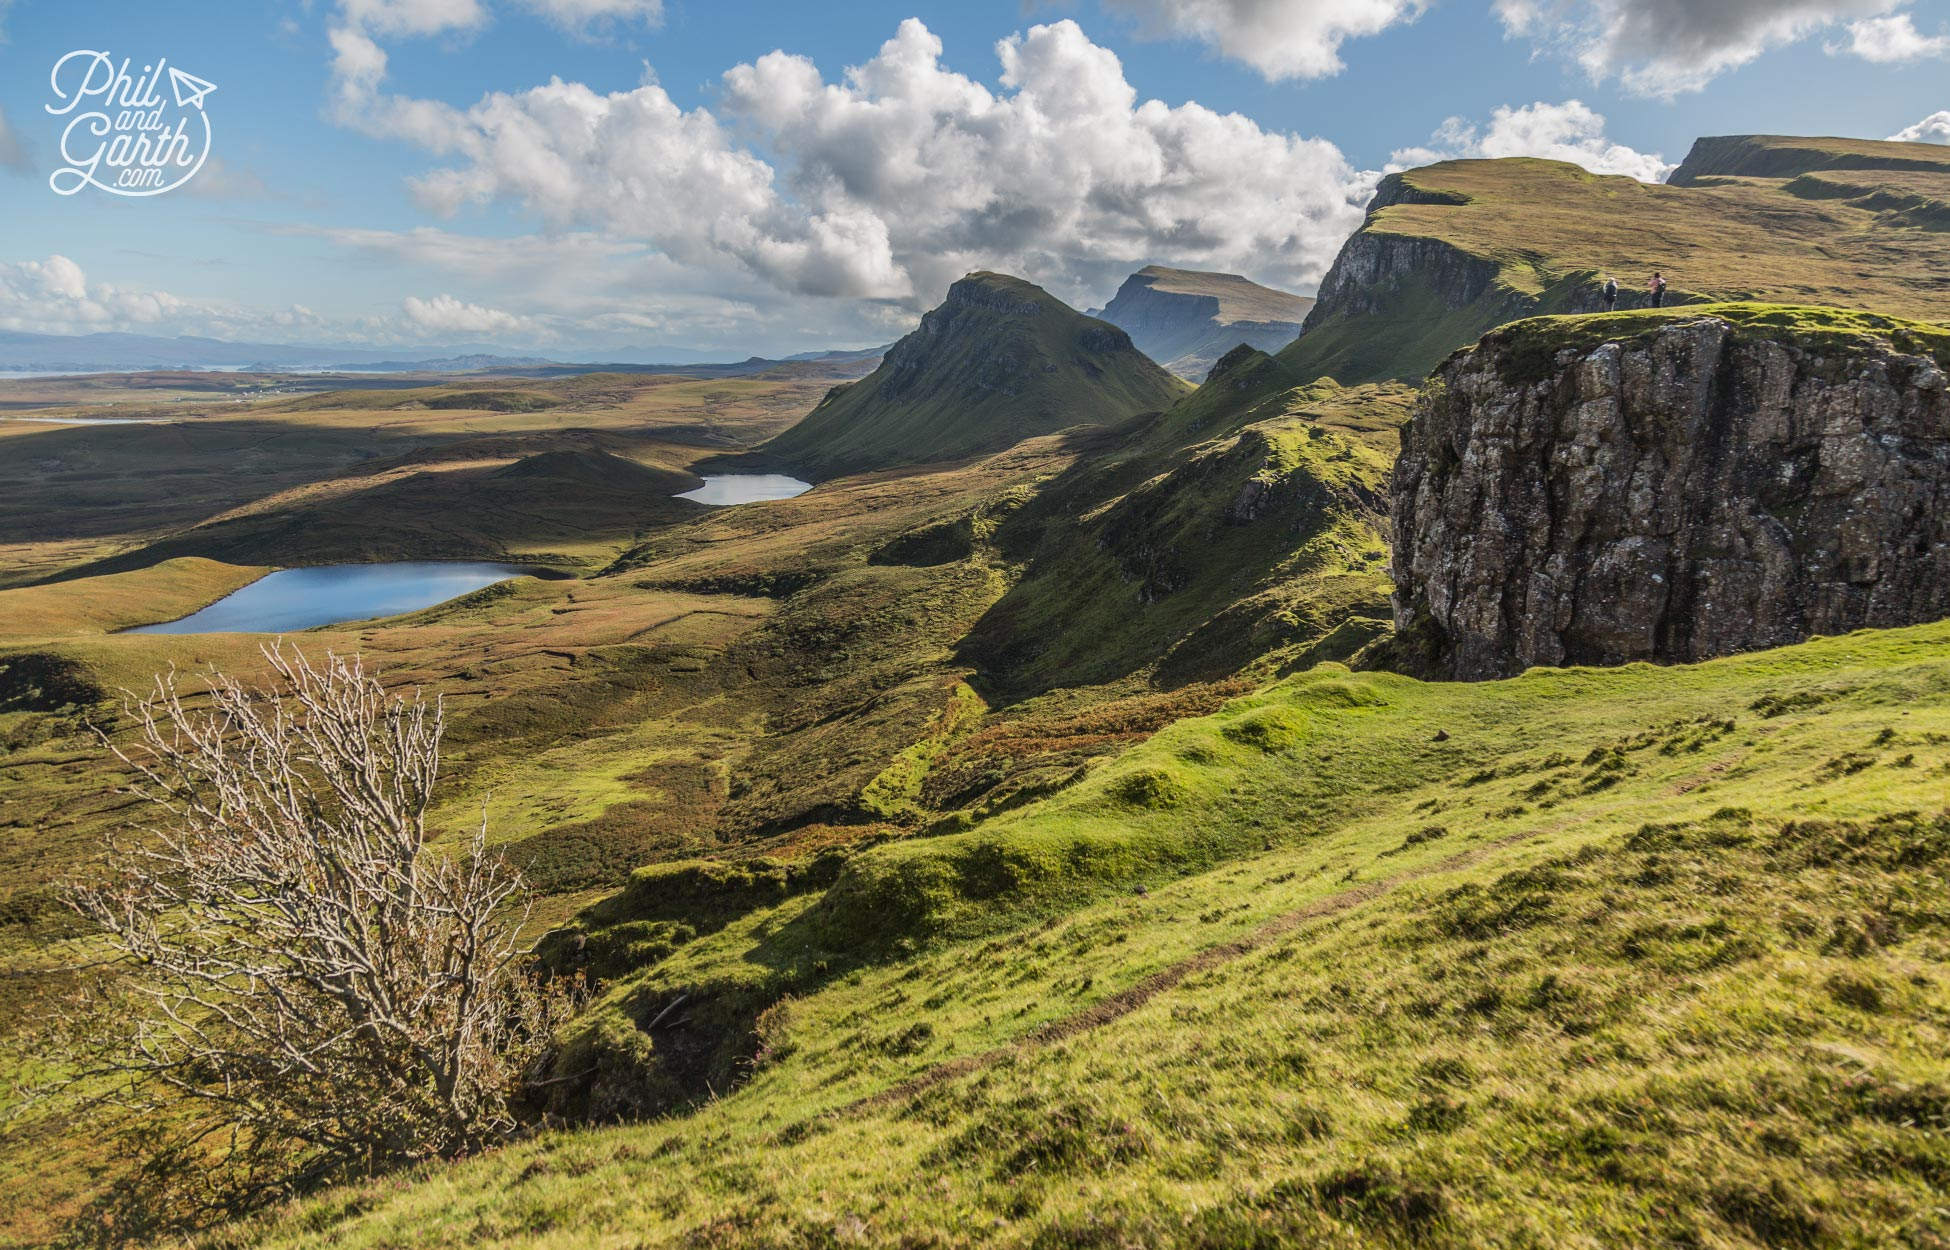 The otherworldly landscape of The Quiraing